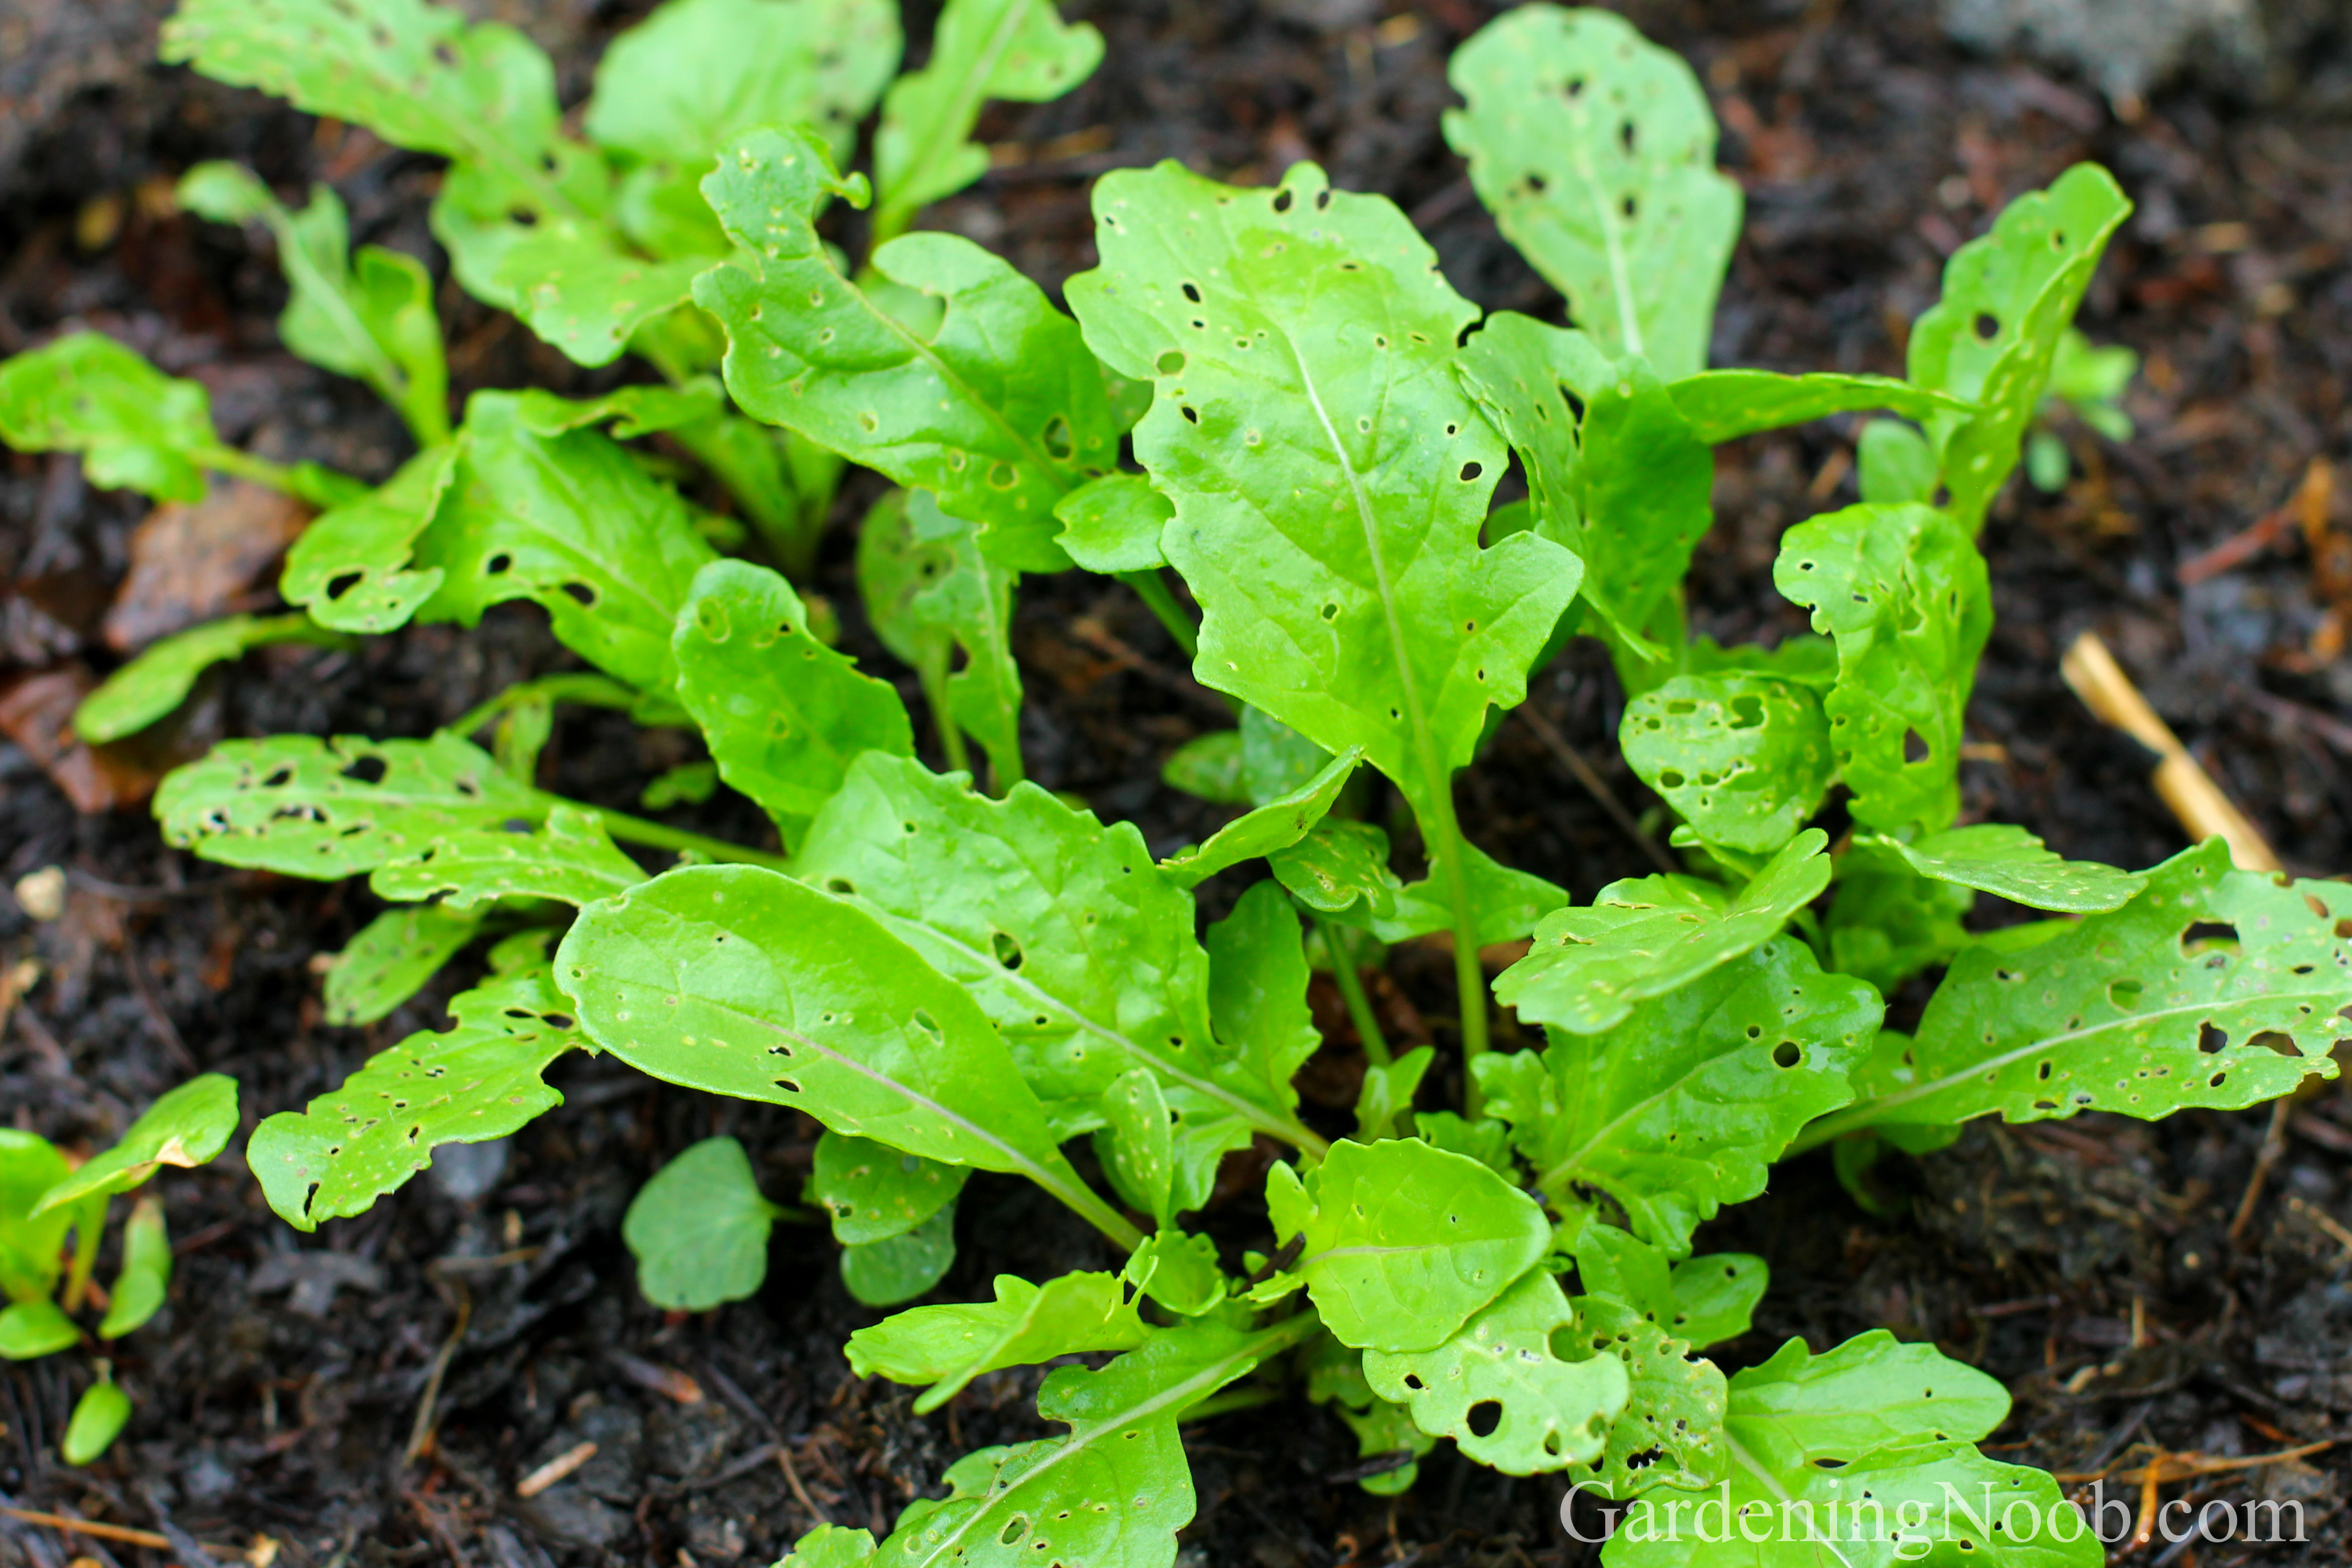 Discover when would be the best time to plant arugula...